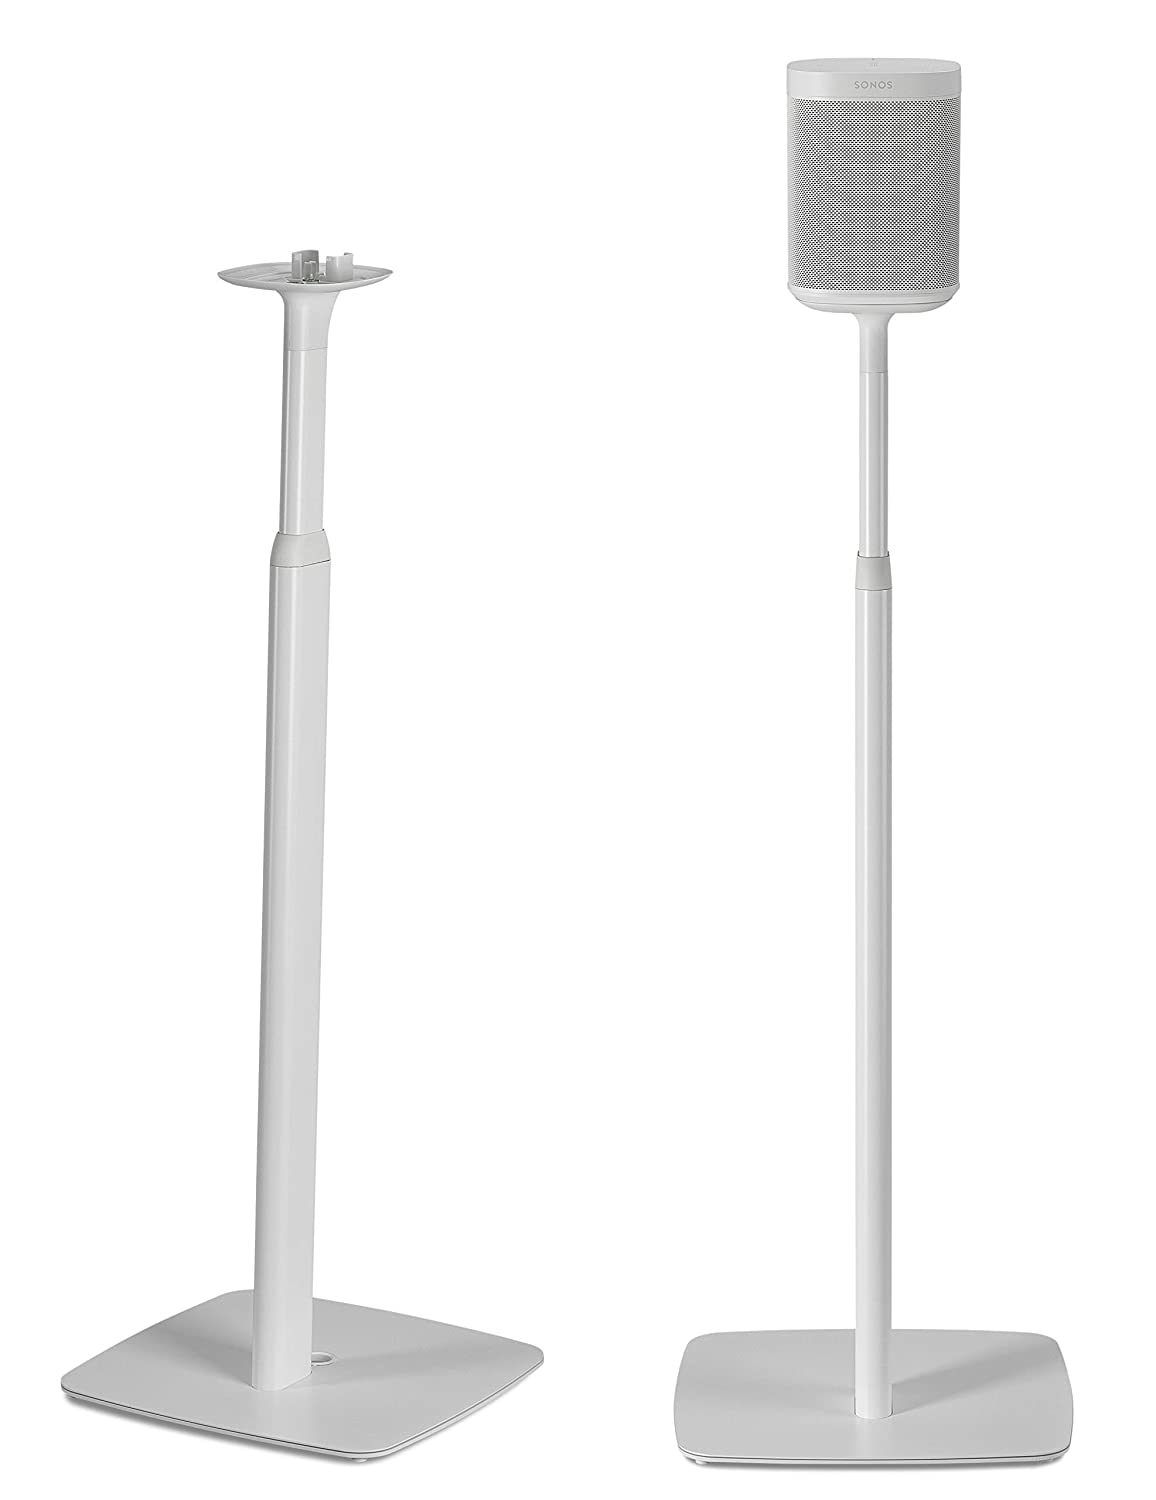 Flexson Adjustable Floor Stands for Sonos One and Sonos PLAY:1 (Pair) Black FLXS1AFS2021